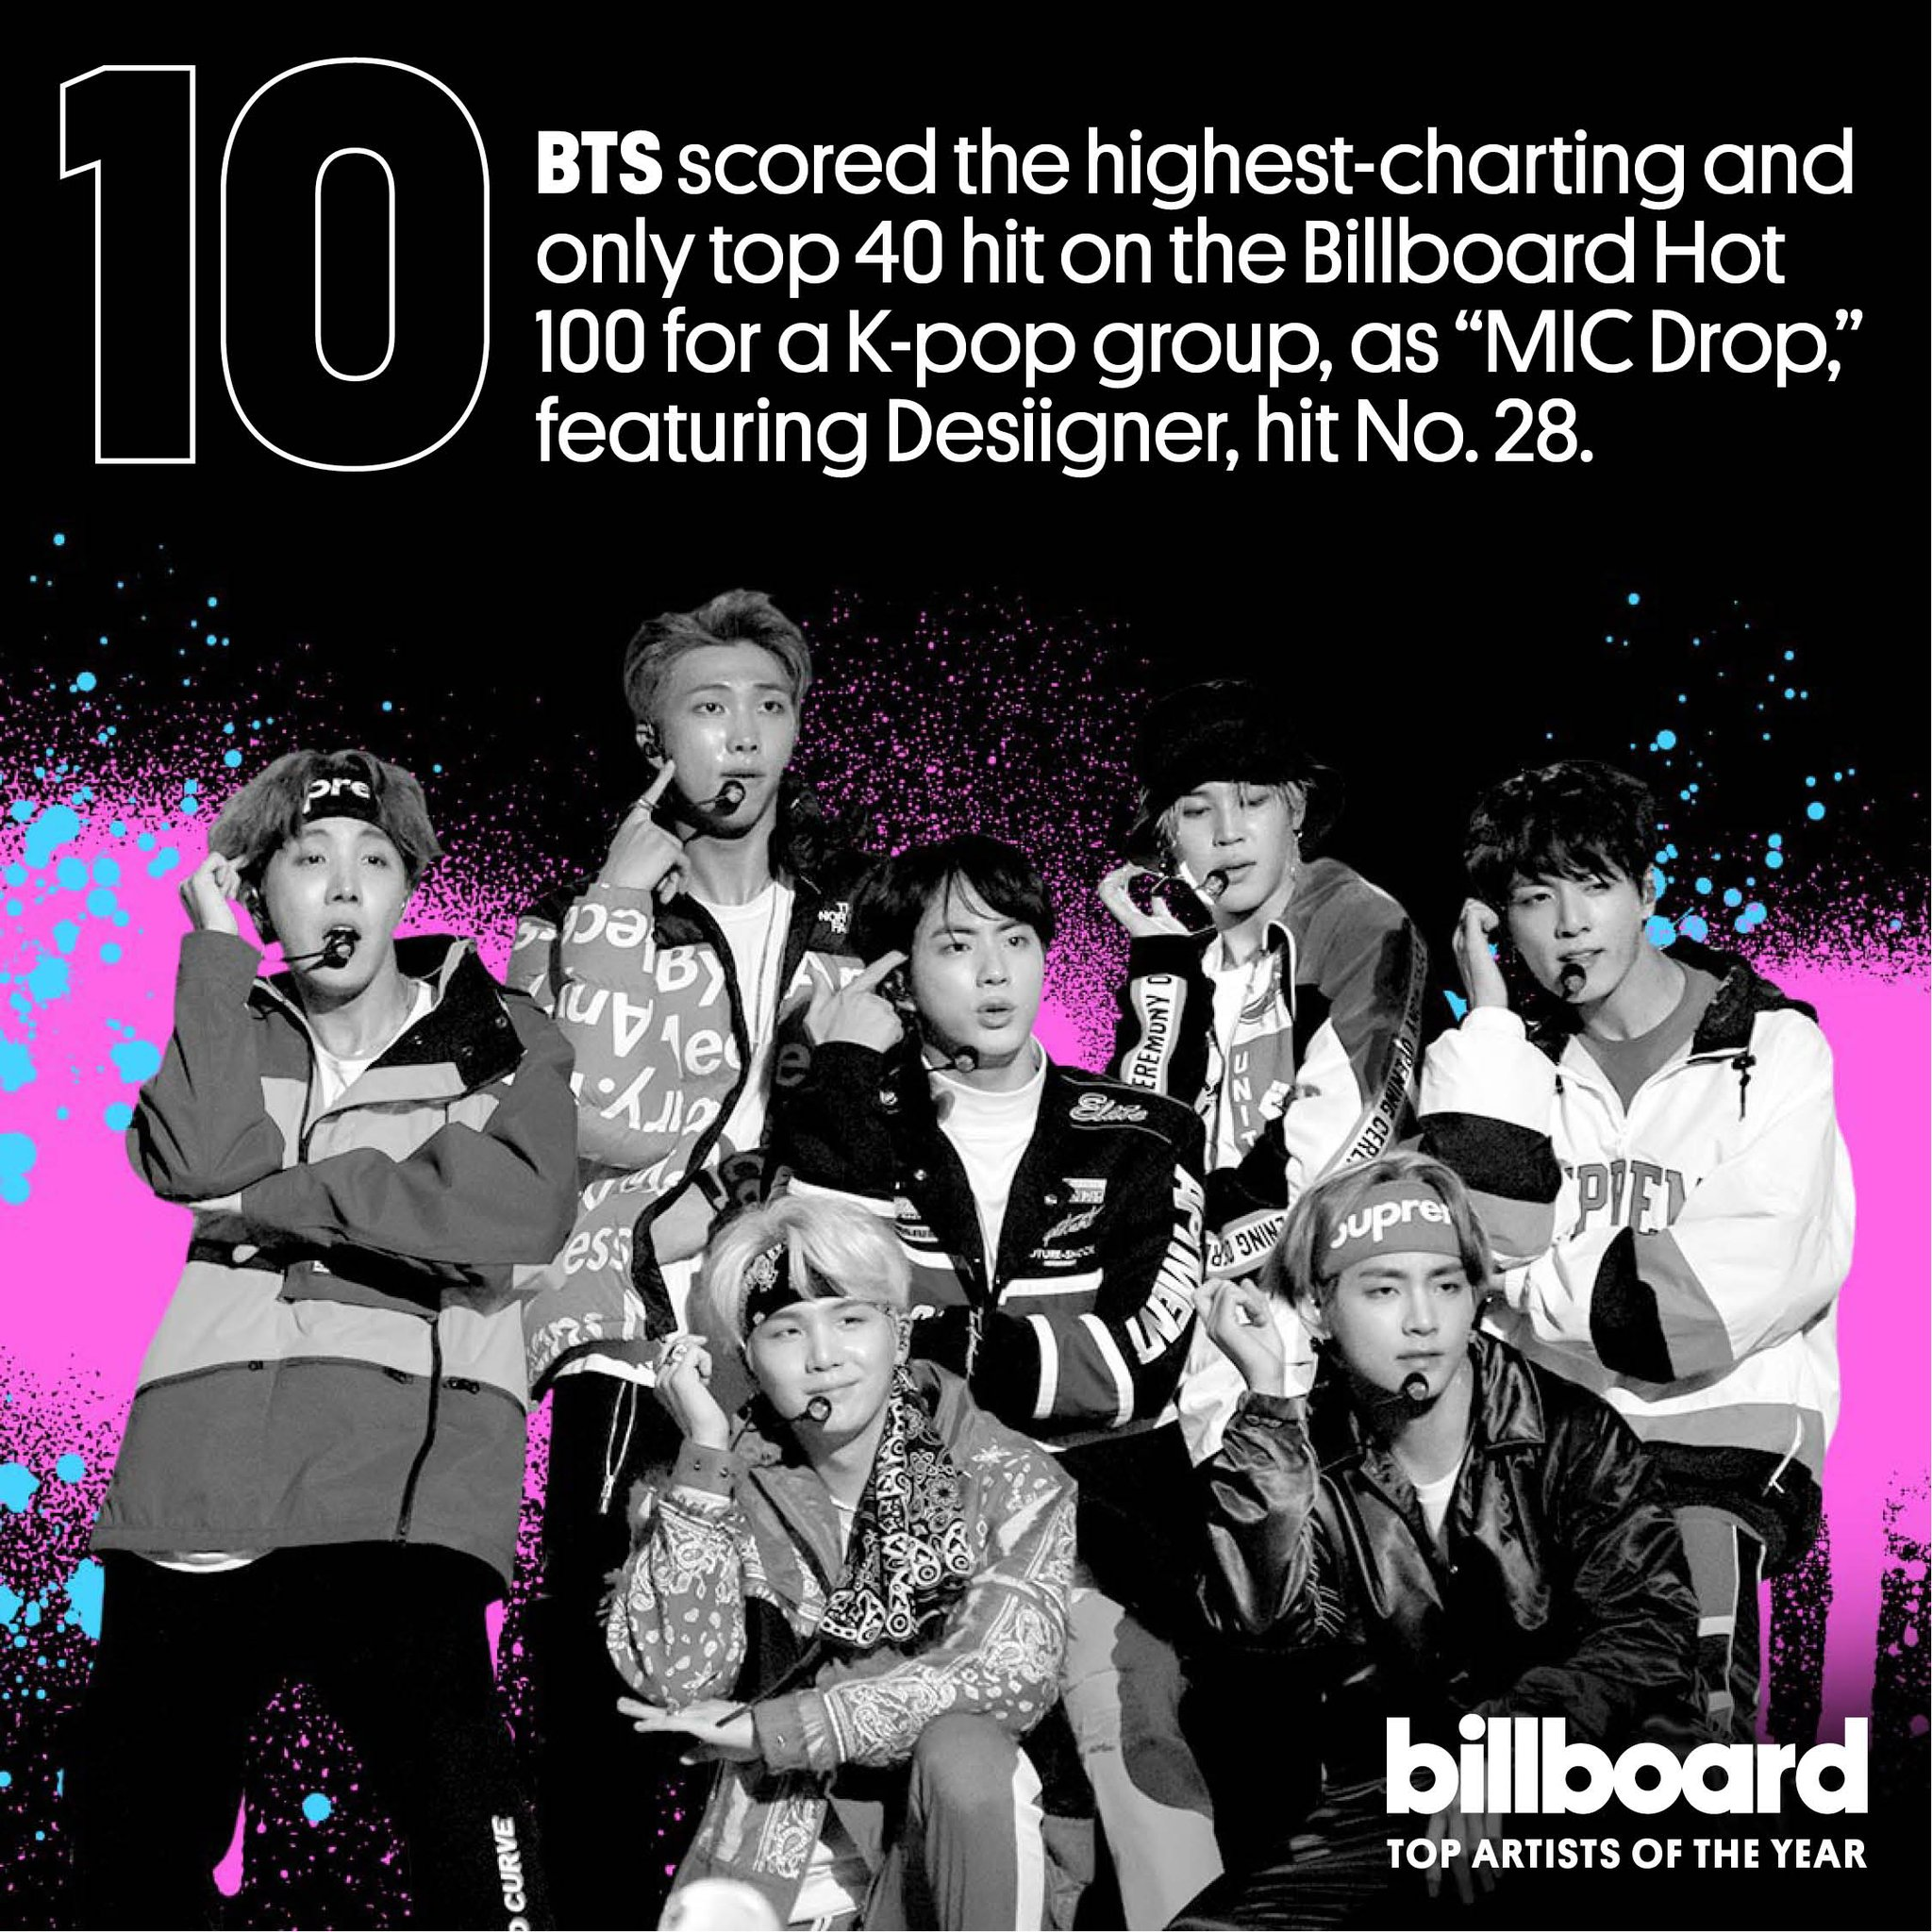 .@BTS_twt are No. 10 on our top artist of the year list! #YearInMusic https://t.co/P3b8ojLKYW https://t.co/rsZayUT95b